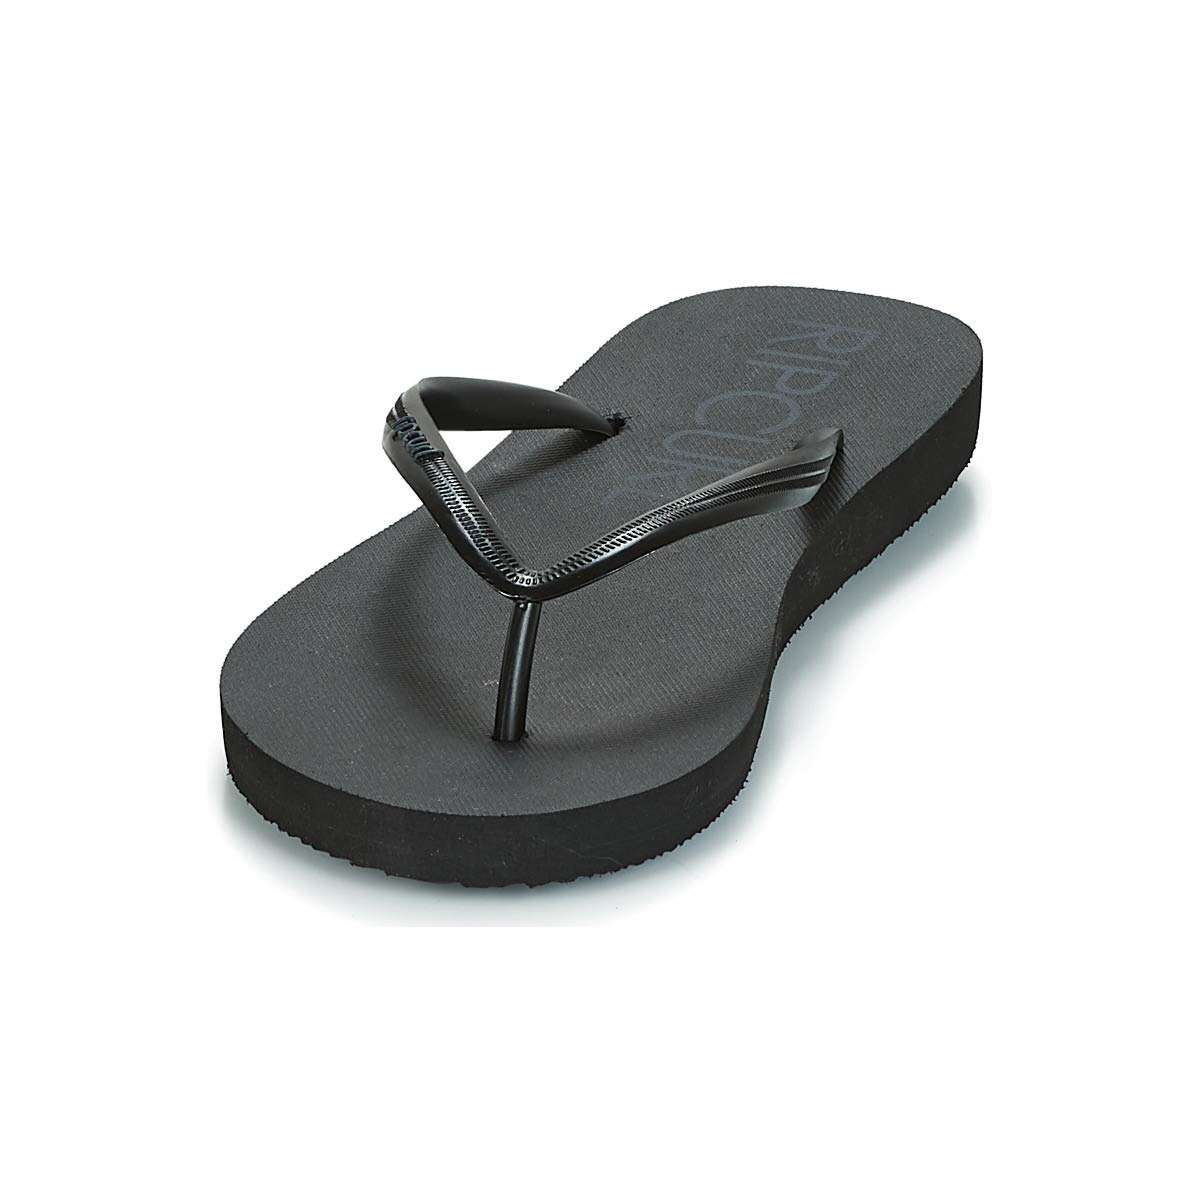 57da53aff492 Amazon.com: Rip Curl Womens Bondi Flip Flops Black - Keep Your feet Comfy  and Protected with These Soft EVA flip Flops: Sports & Outdoors